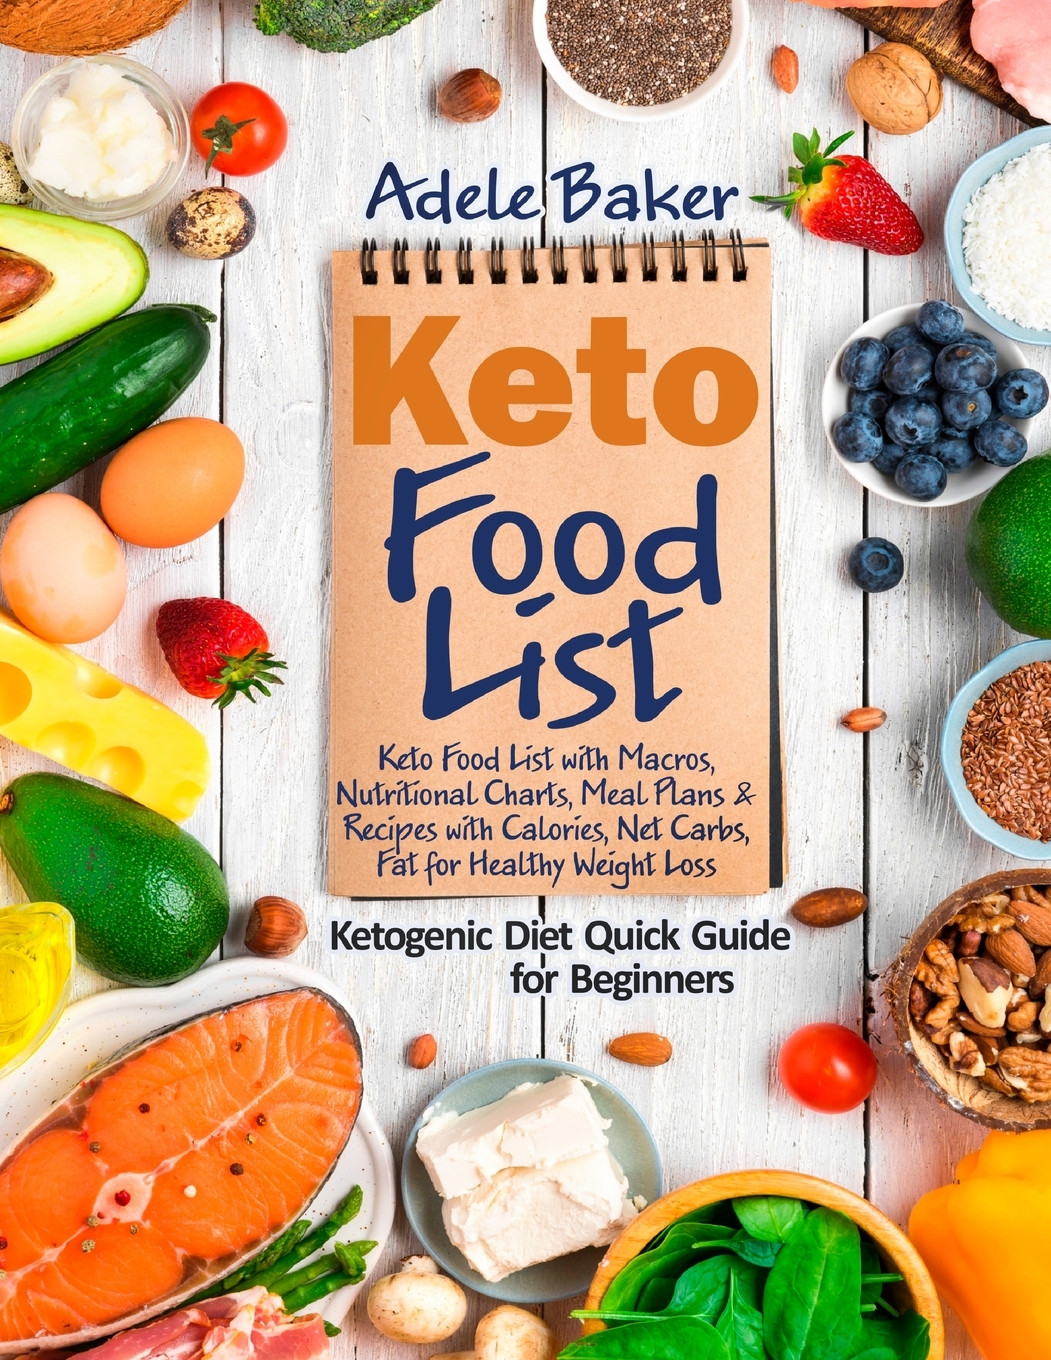 Keto Diet For Beginners Losing Weight Snacks  Keto Food List Ketogenic Diet Quick Guide for Beginners